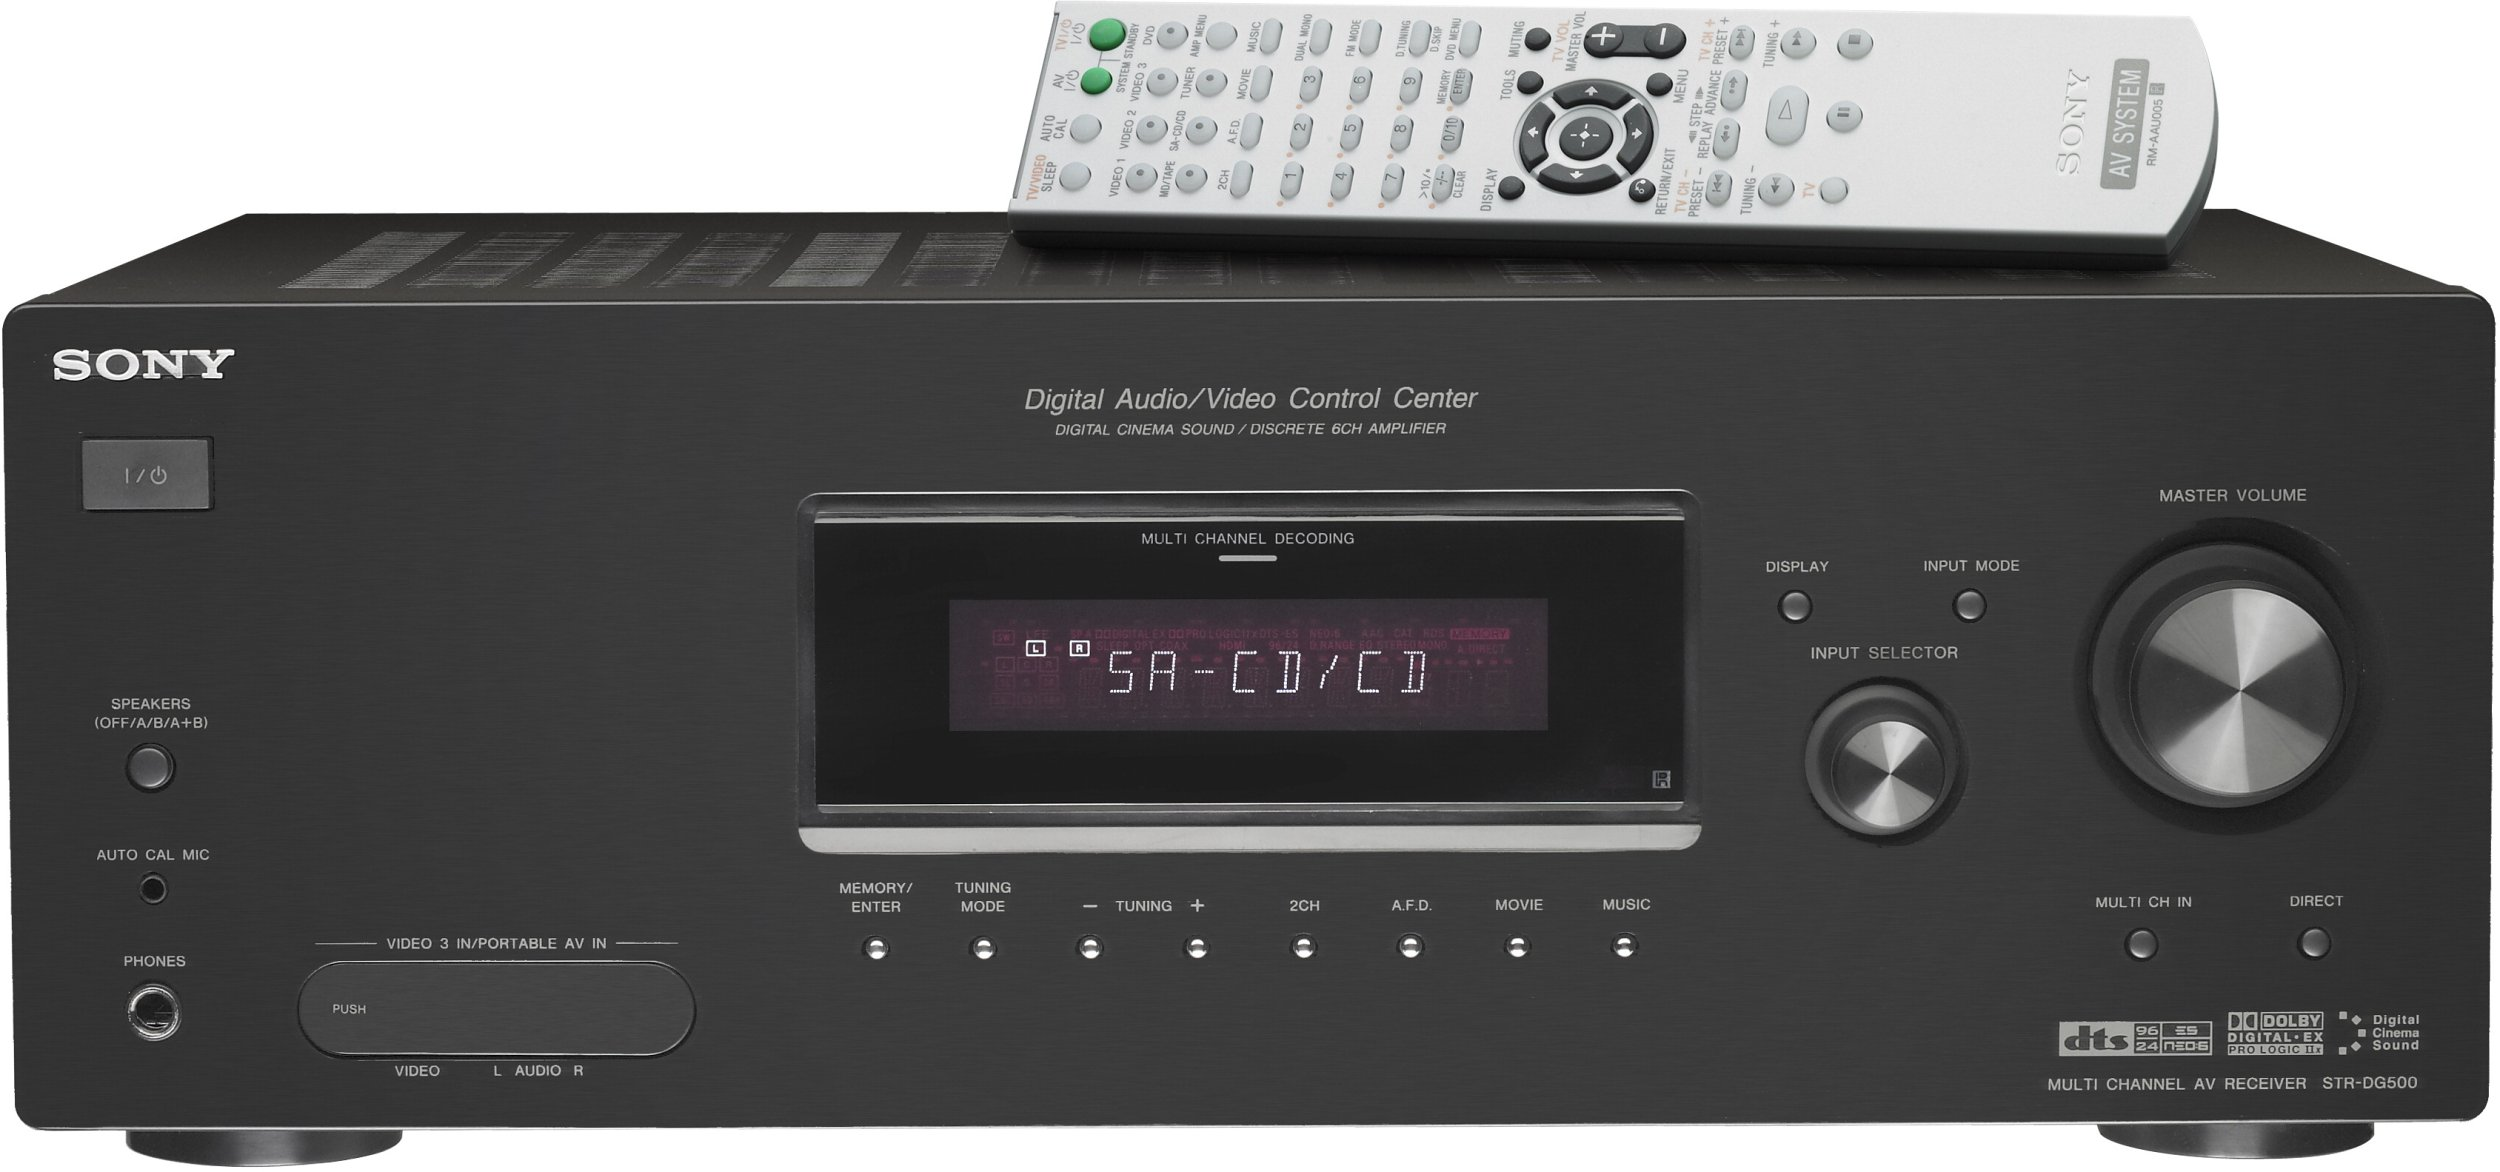 Sony STR-DG500 6.1 Channel Home Theater Receiver (Discontinued by Manufacturer)